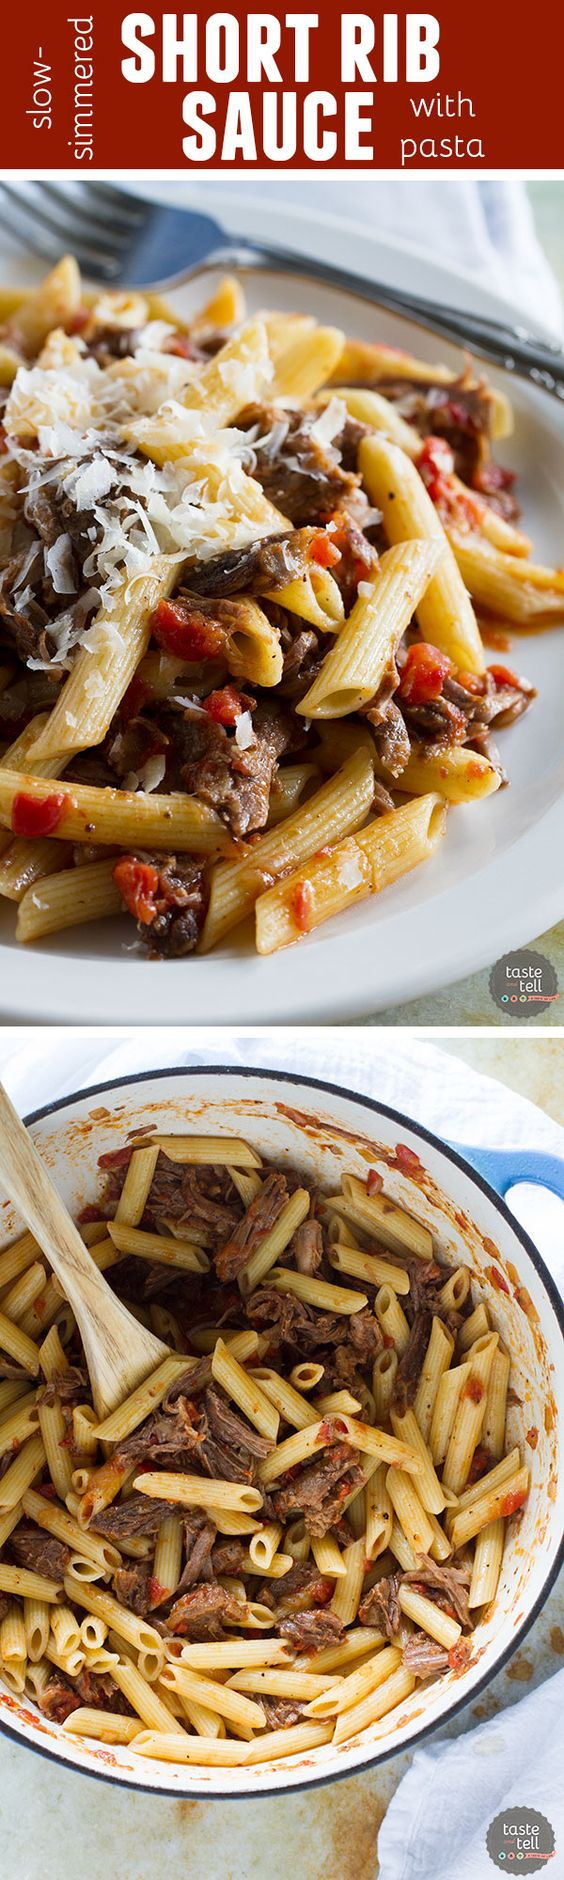 in an easy tomato sauce for this Slow Simmered Short Rib Sauce ...